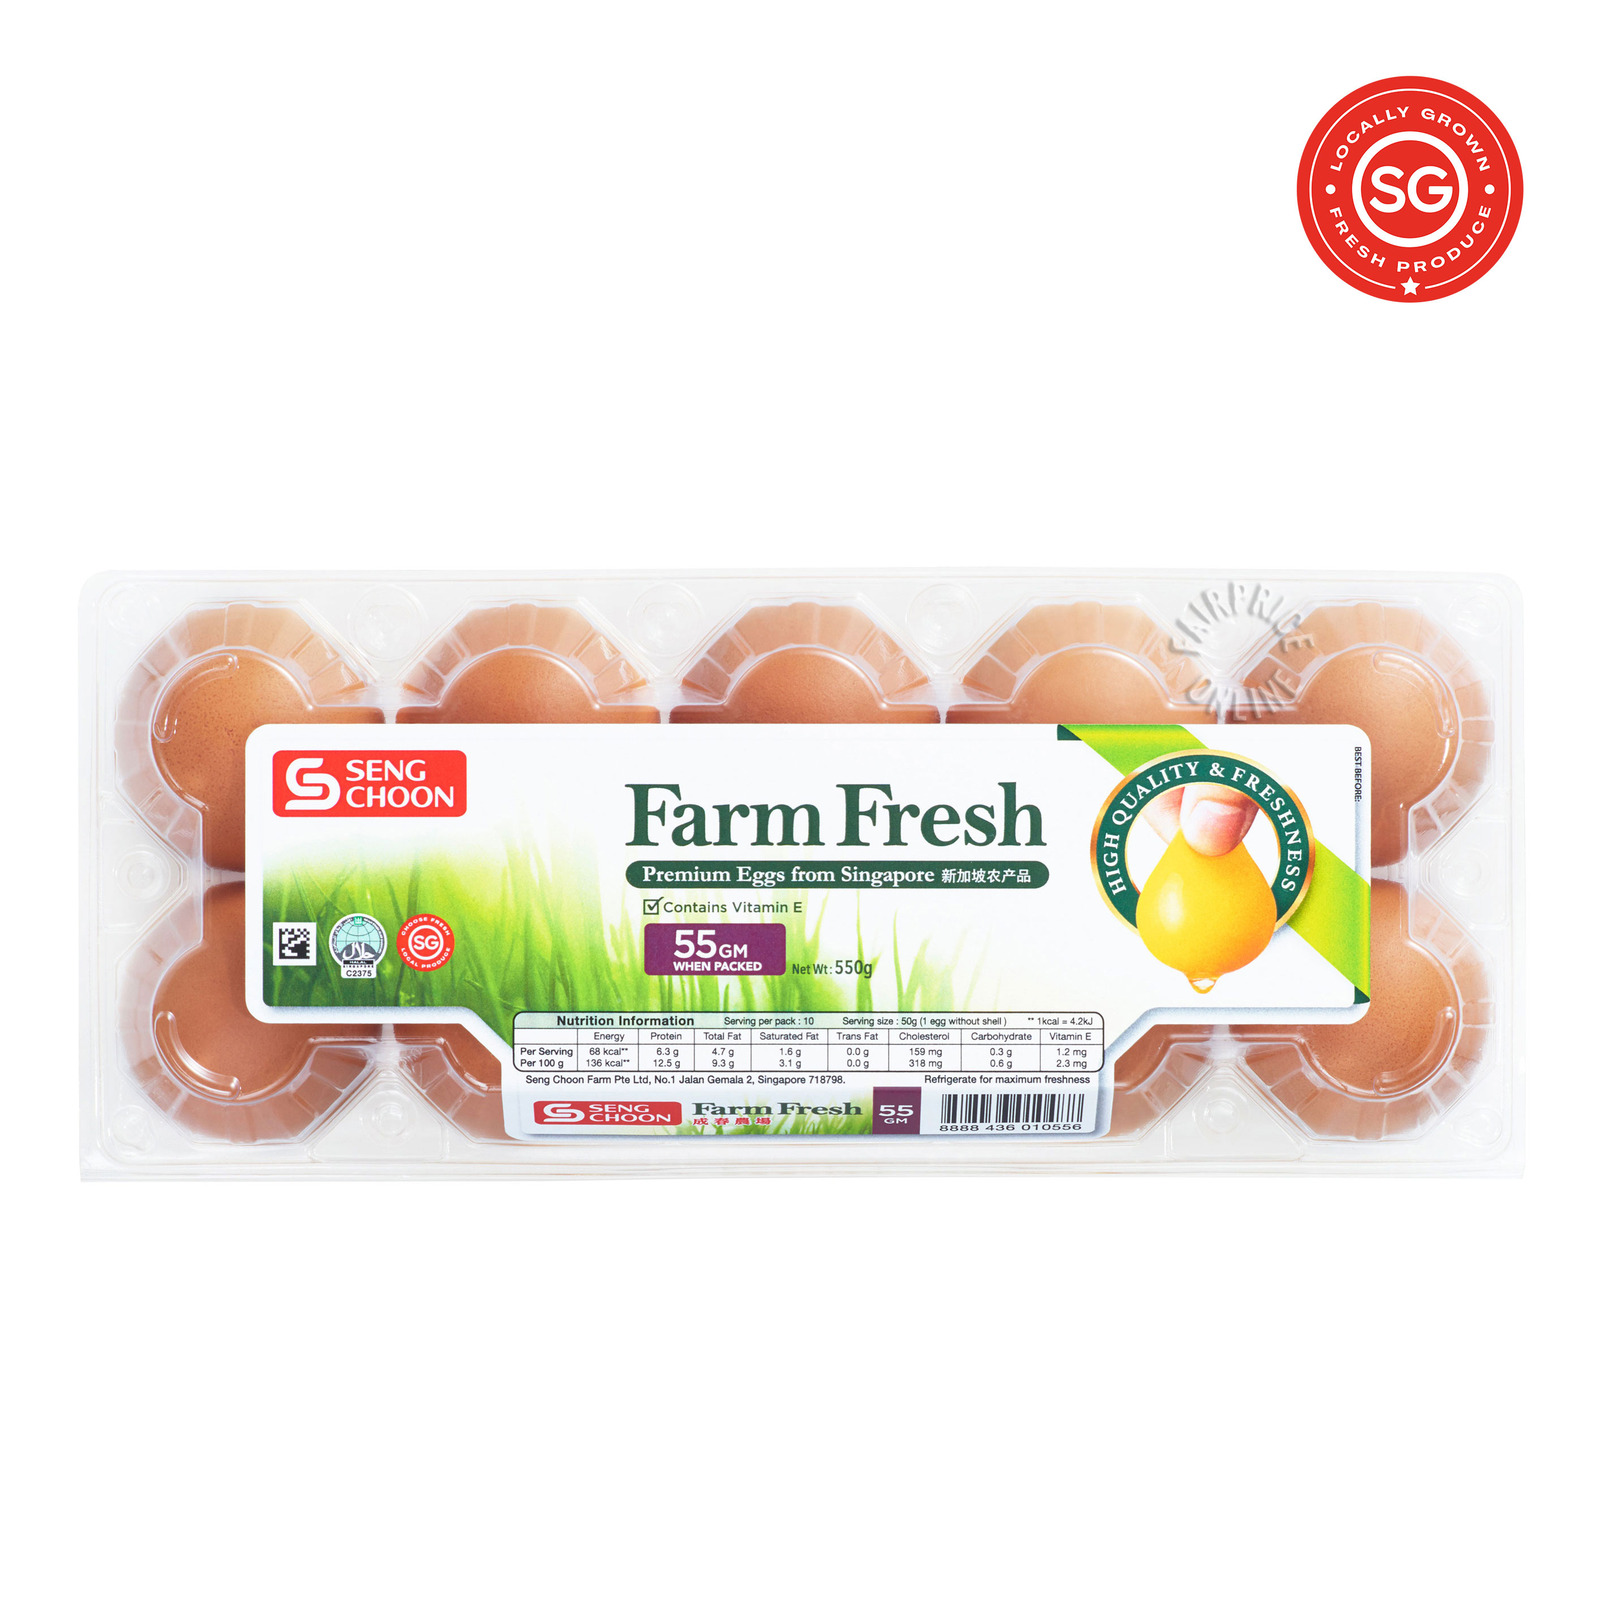 Seng Choon Lower Cholesterol Eggs - Farm Fresh